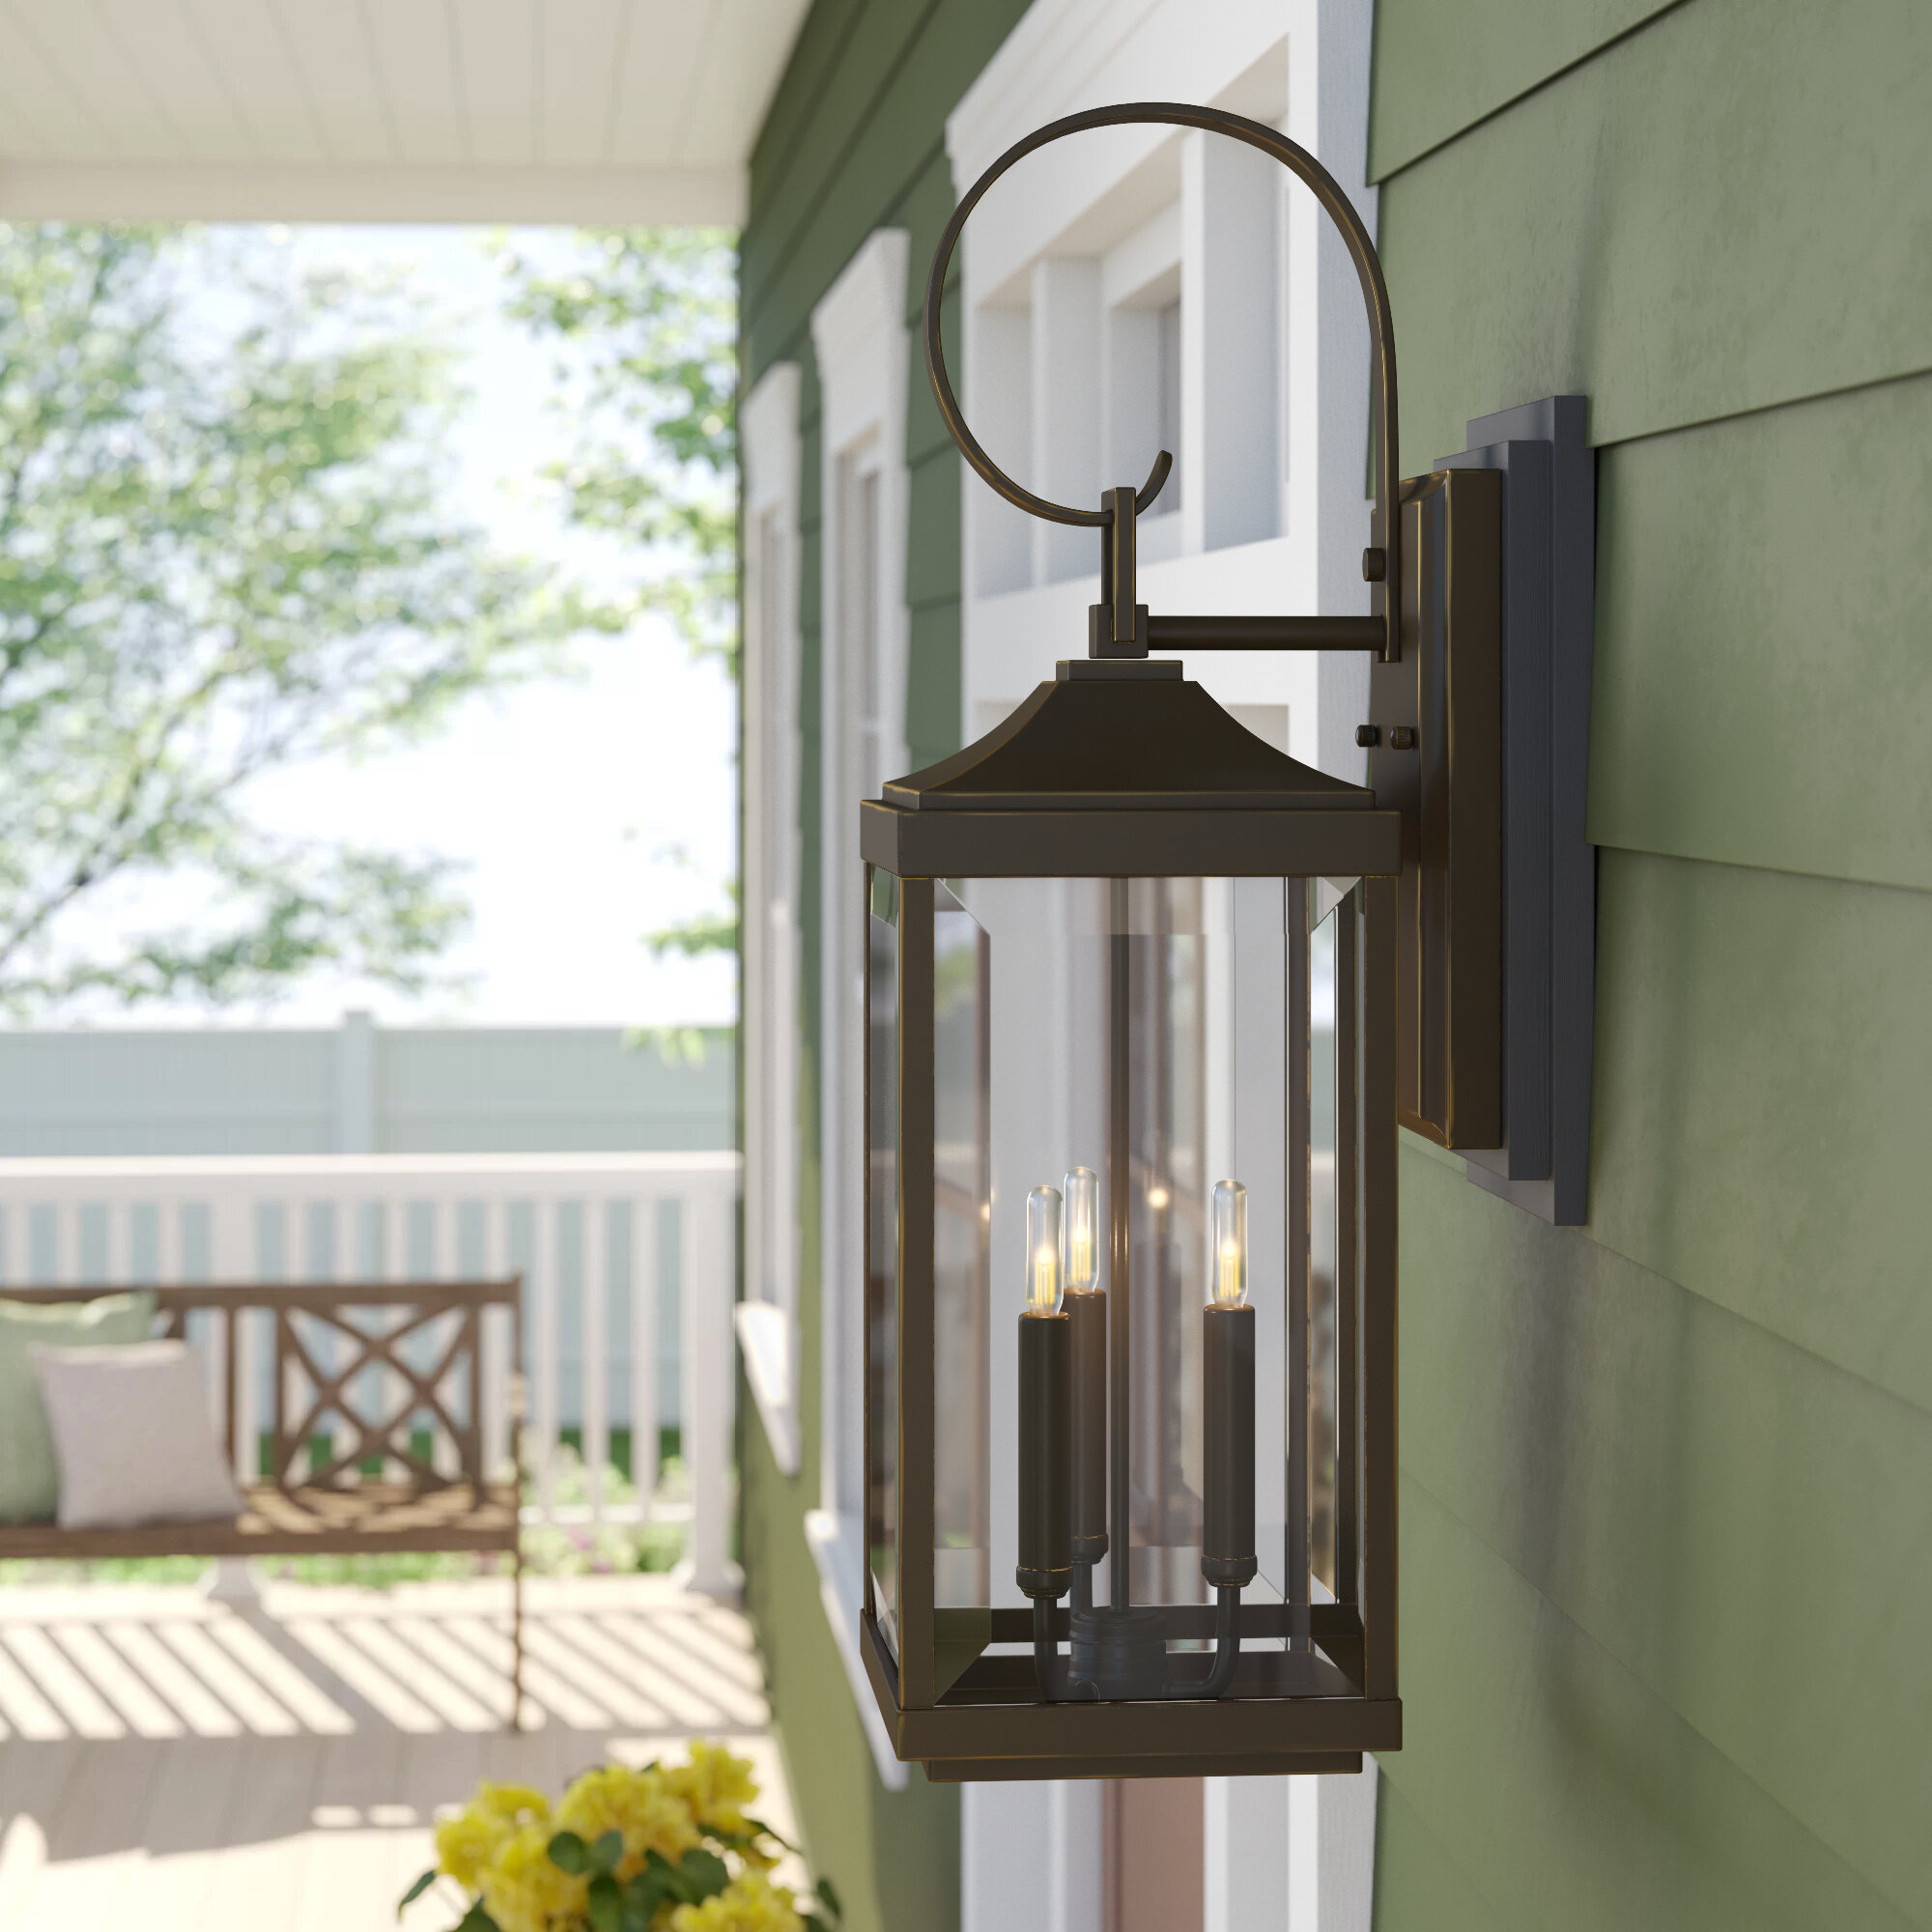 Birch Lane Agastya 3 Bulb 30 62 H Outdoor Wall Lantern Reviews Wayfair